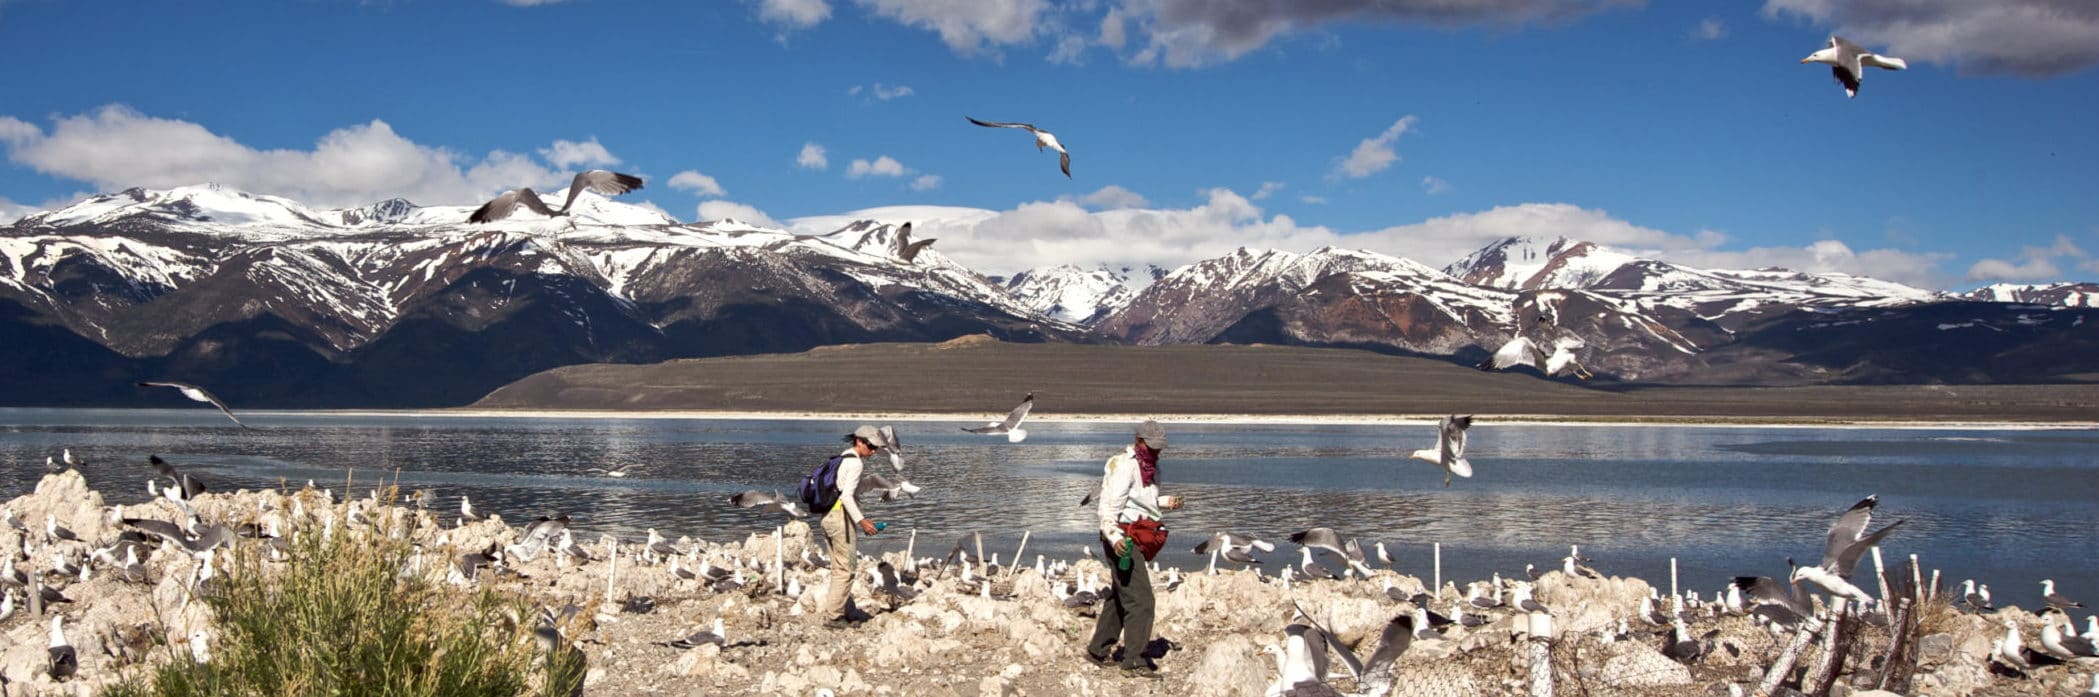 Two researchers walk carefully on an island in Mono Lake with California Gulls standing all around the rocky ground and flying in the air, with dramatic snow-covered mountains in the distance.